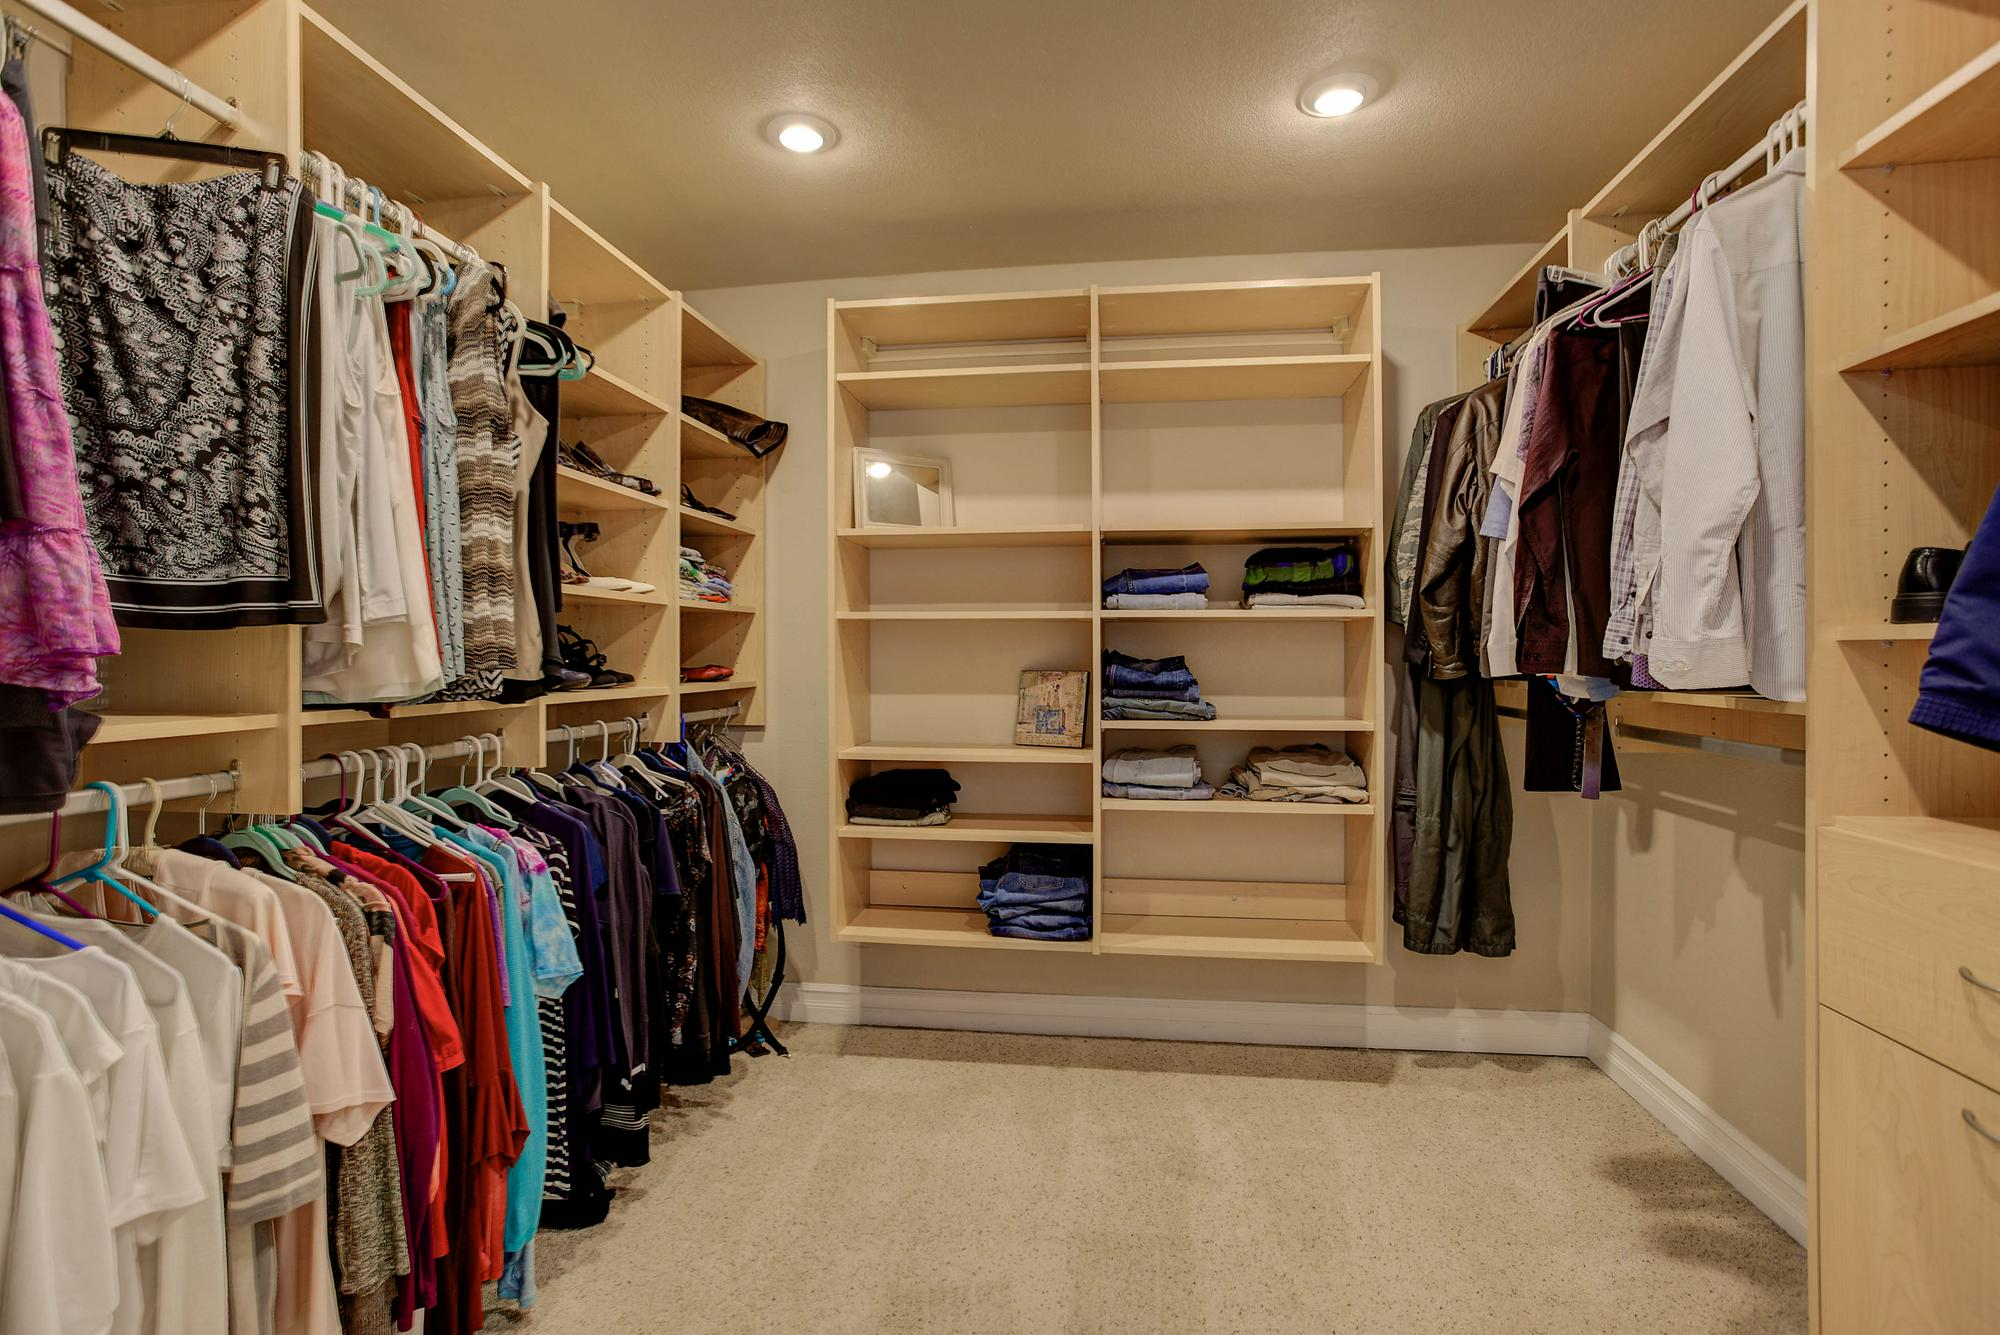 Listassistimage-318719-web_ready-6970%2bsouth%2bwaco%2bstreet_mastercloset-2000x2000